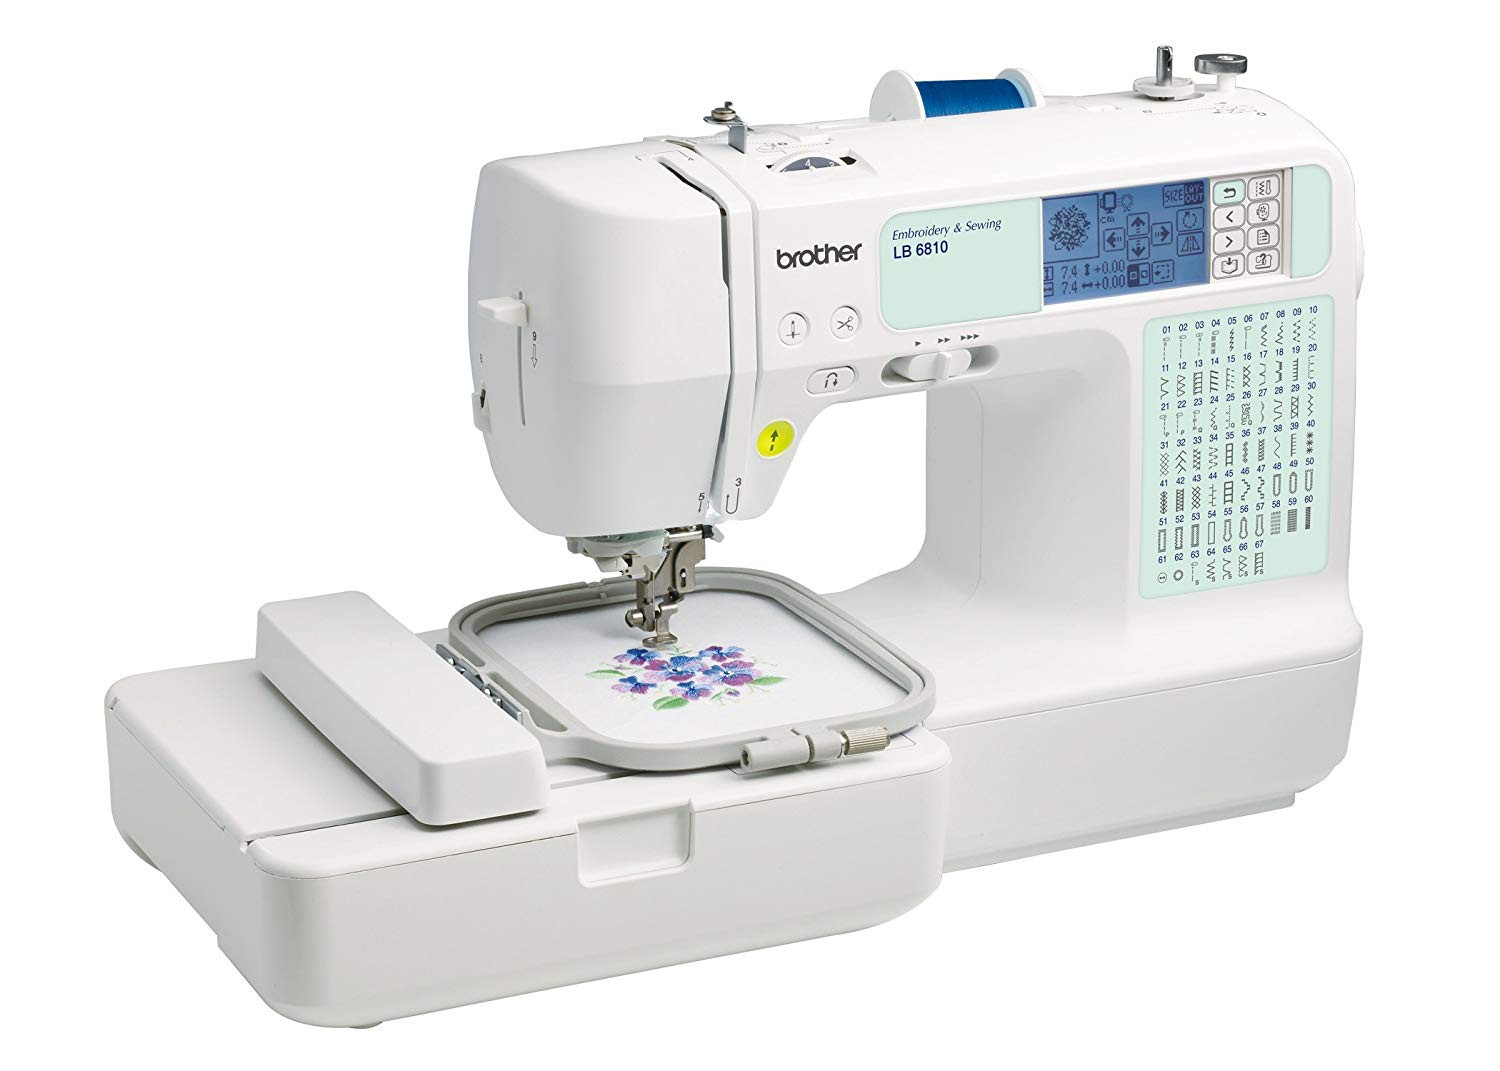 Sewing and Embroidery Machine Unique Brother Lb6810 Puterized Sewing Embroidery Machine with Of Unique 48 Pics Sewing and Embroidery Machine